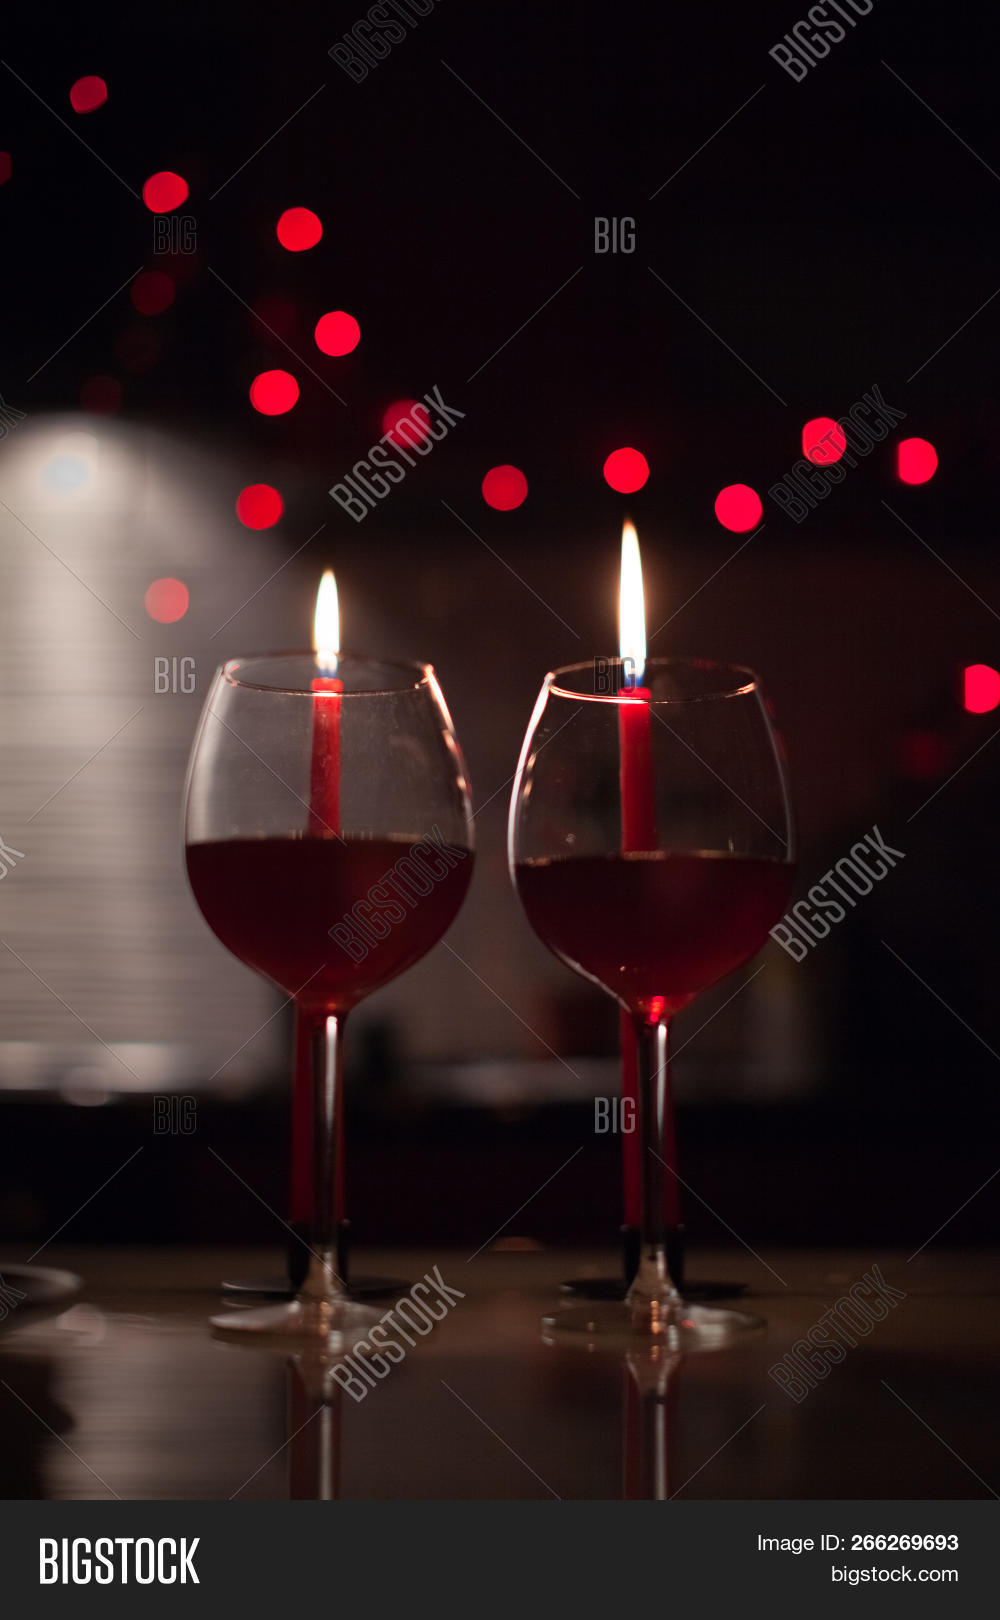 14Th,February,alcohol,anniversary,background,black,candle,candlelight,celebrate,celebration,cheers,christmas,country,dark,date,dining,dinner,drink,elegance,elegant,evening,fire,flame,food,garland,glass,heat,holiday,hotel,light,liquid,love,new,night,party,passion,red,relax,restaurant,romance,romantic,silhouette,table,two,valentine,warm,wine,wineglass,winter,year